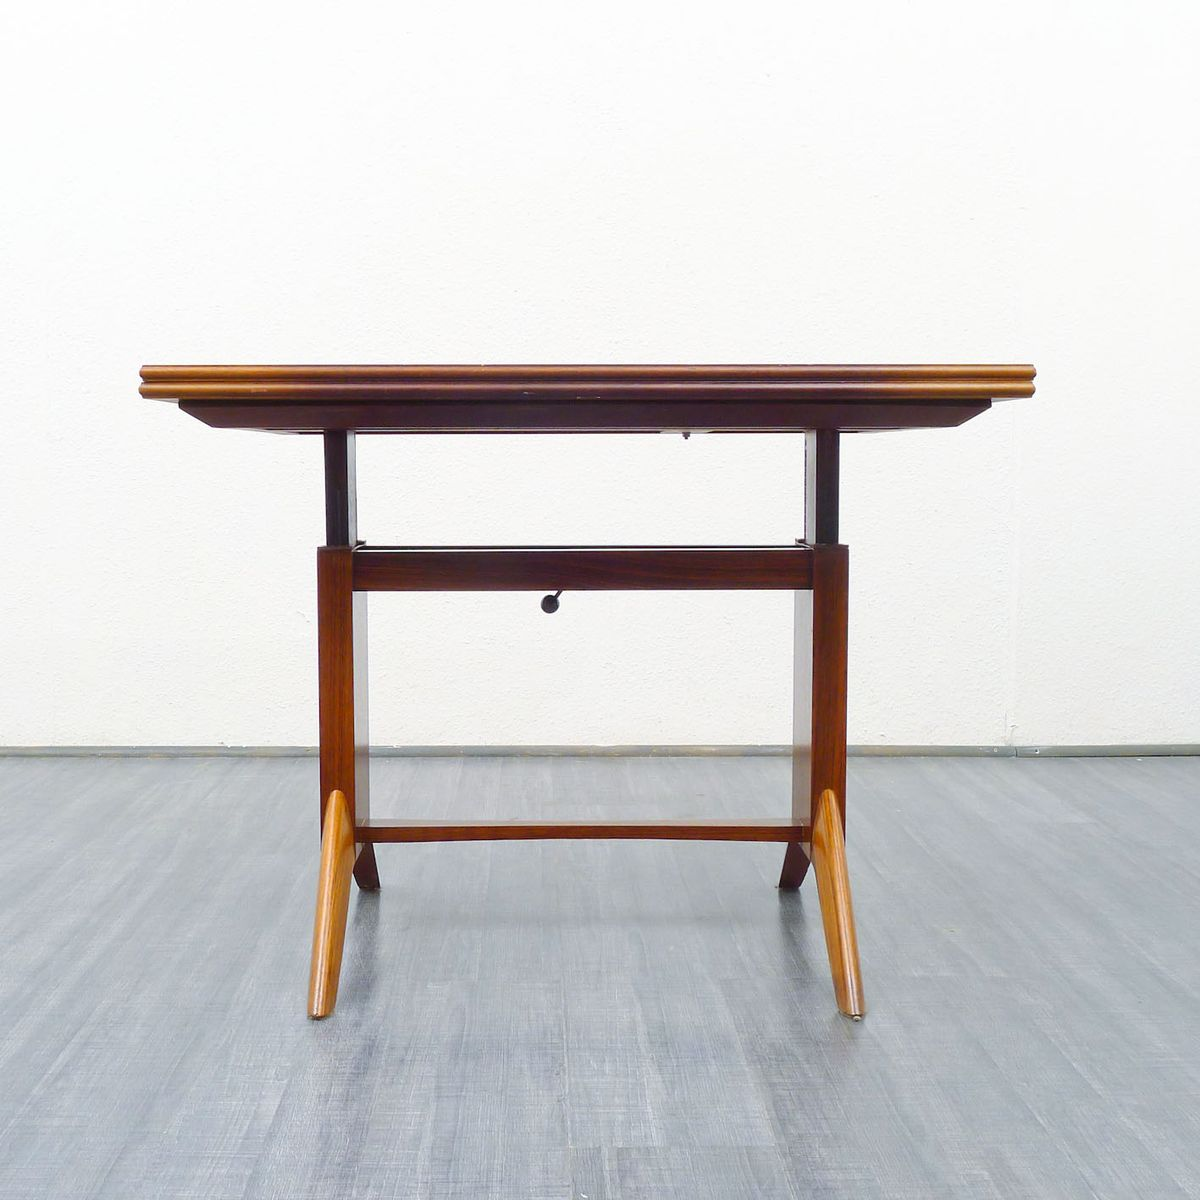 Rosewood Coffee Or Dining Table From Wilhelm Renz 1950s For Sale At Pamono: coffee table dining